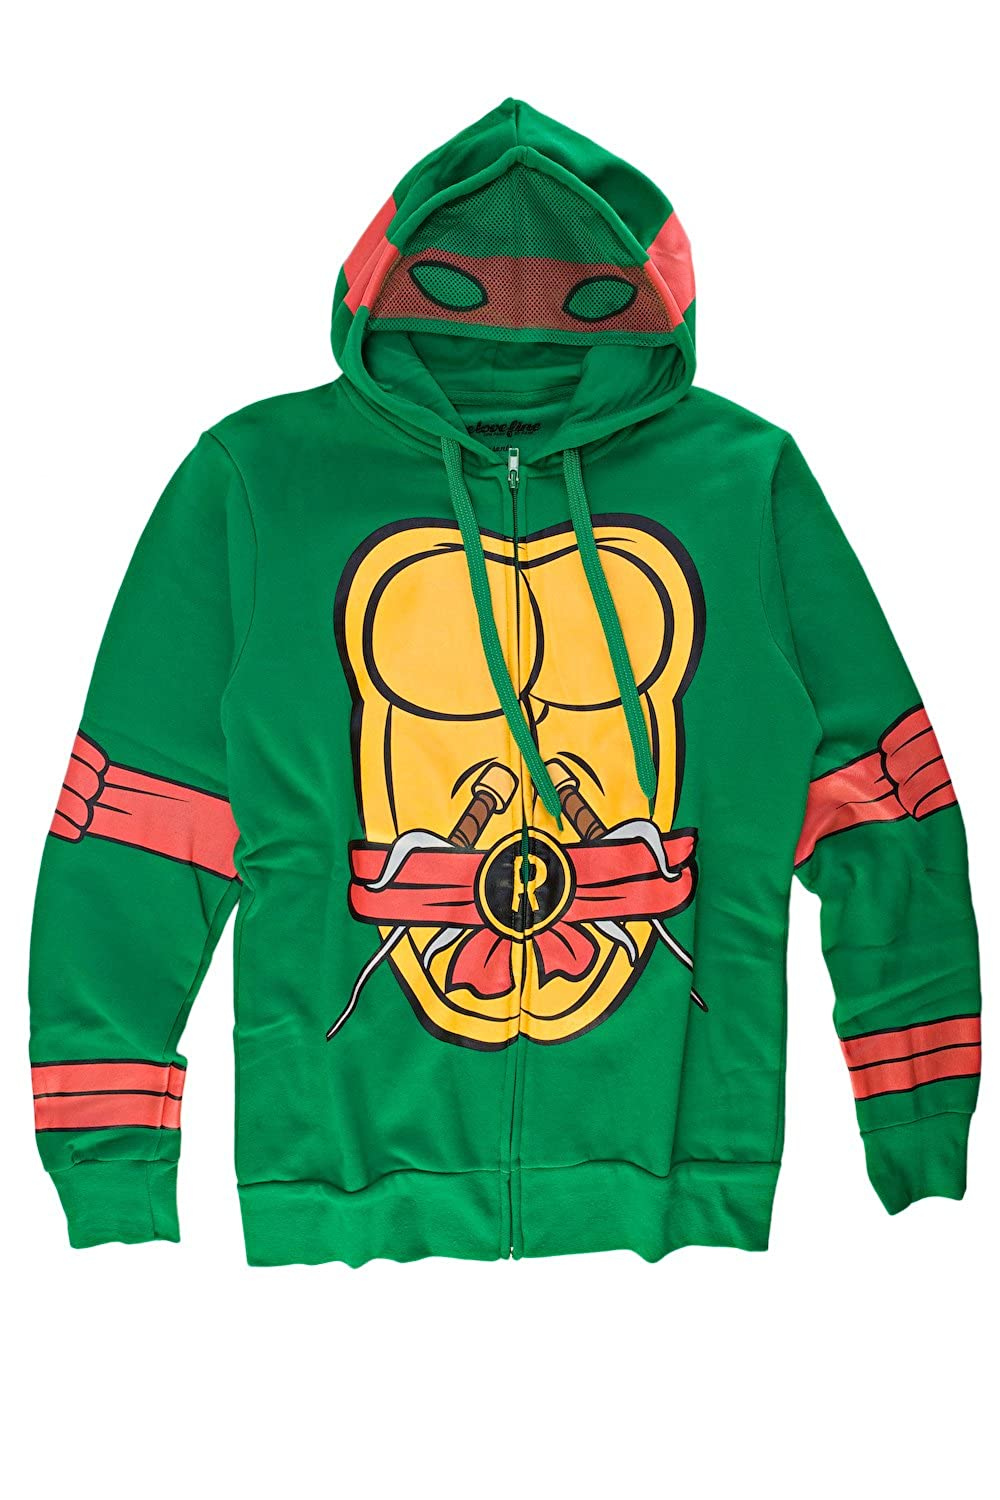 Teenage Mutant Ninja Turtles I Am Raphael Mens Zip-Up Costume Hoodie Toy Zany